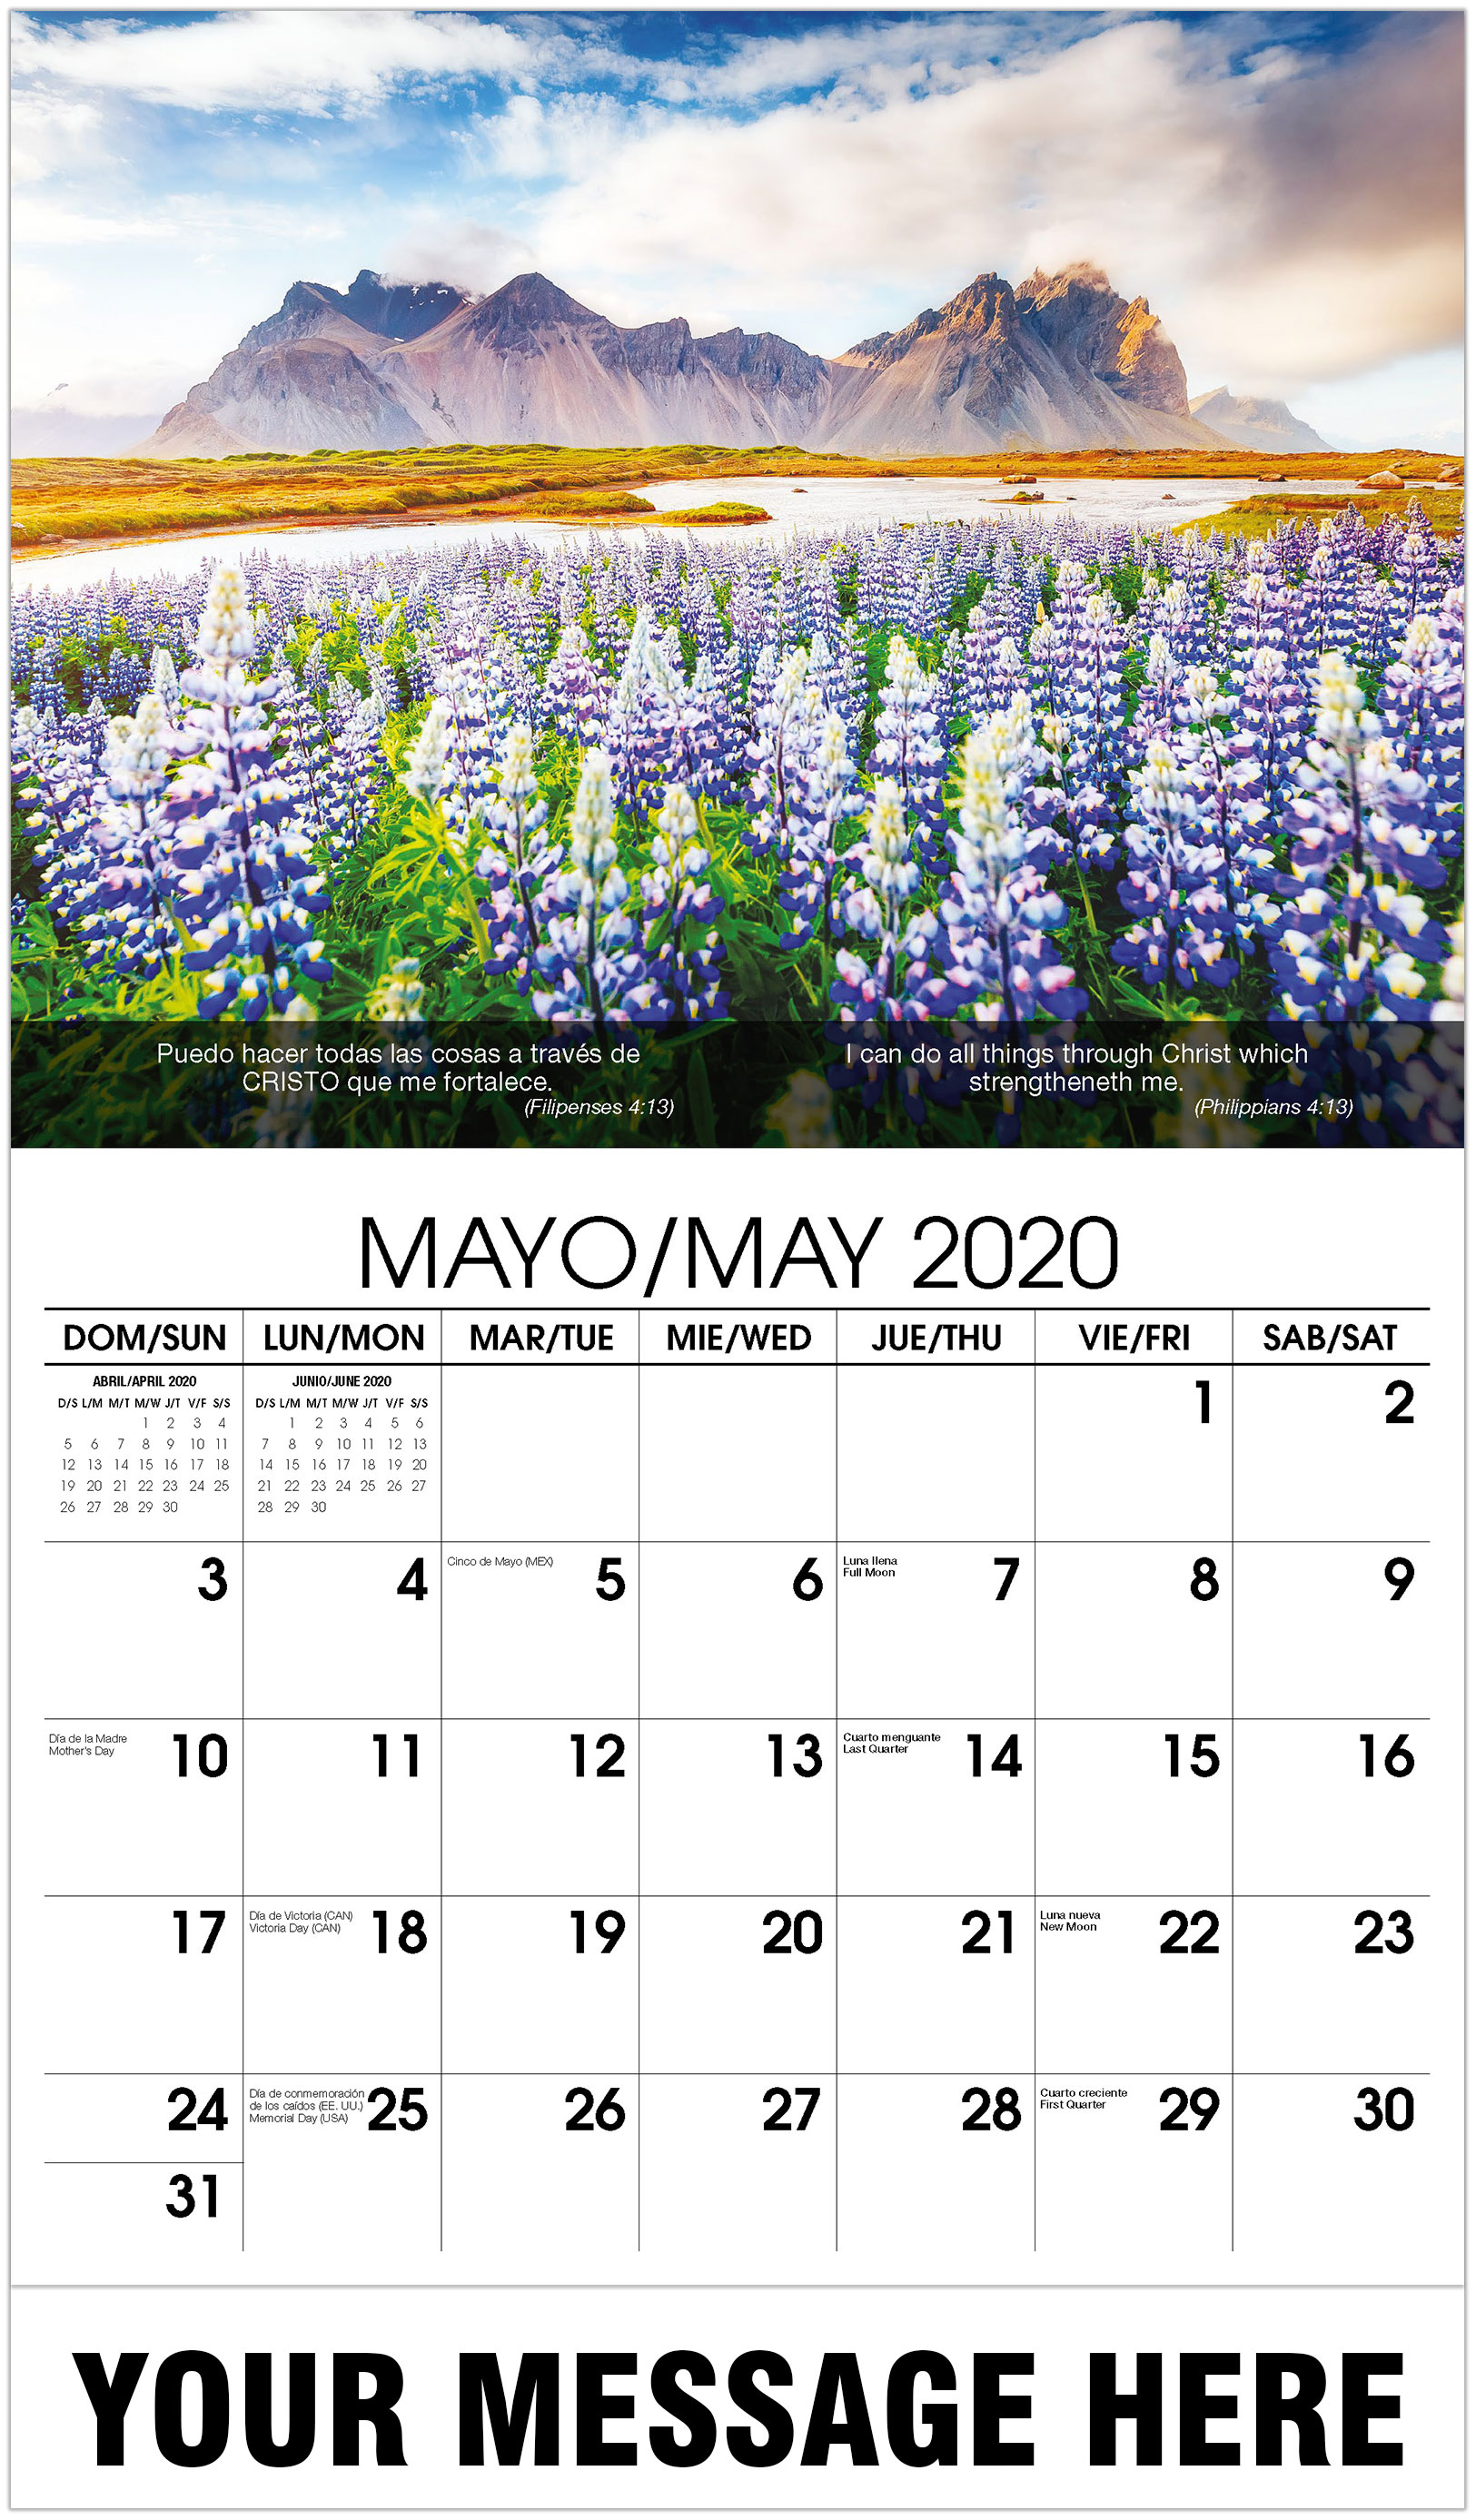 2020 Bilingual Promotional Calendar - Flowers With Mountain In Back - May